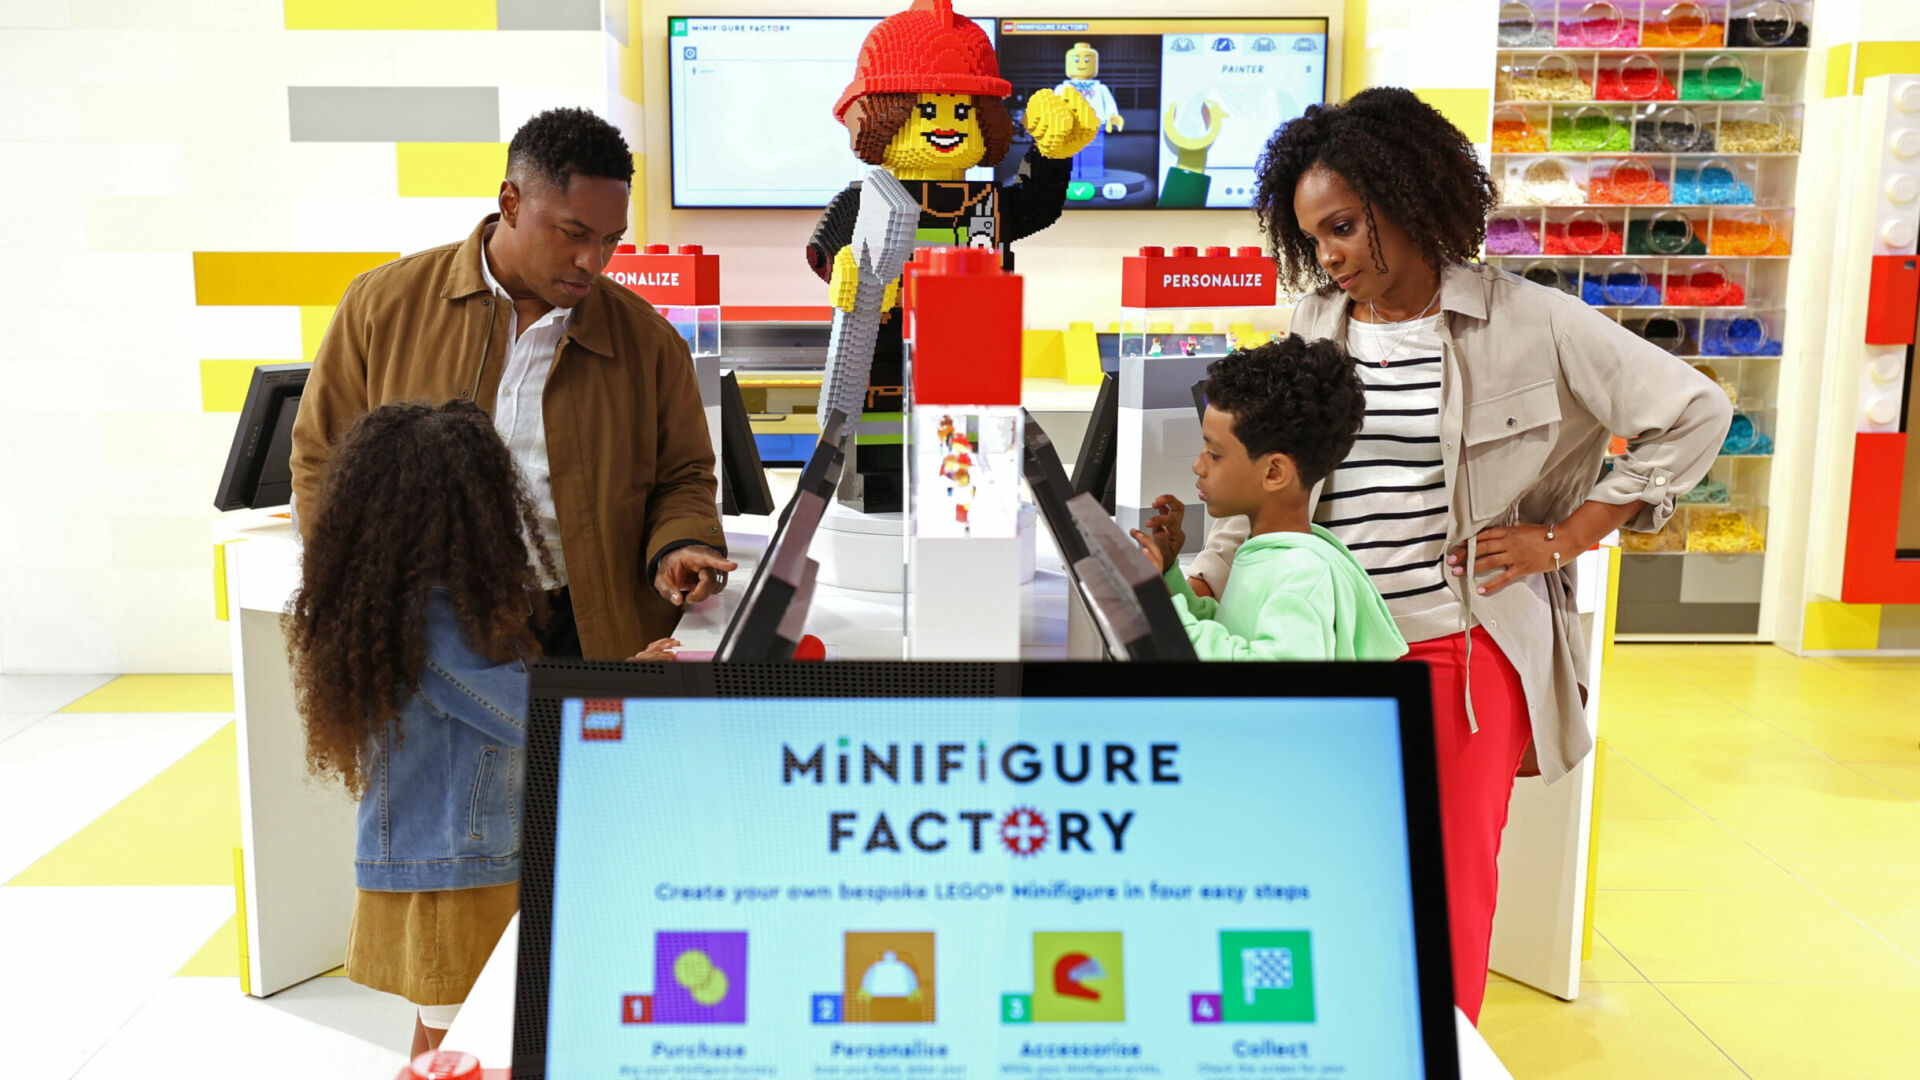 Minifigure Factory: Touchscreen stations allow visitors to create their own print-on-demand minifigure. (Photo by Cindy Ord/Getty Images)